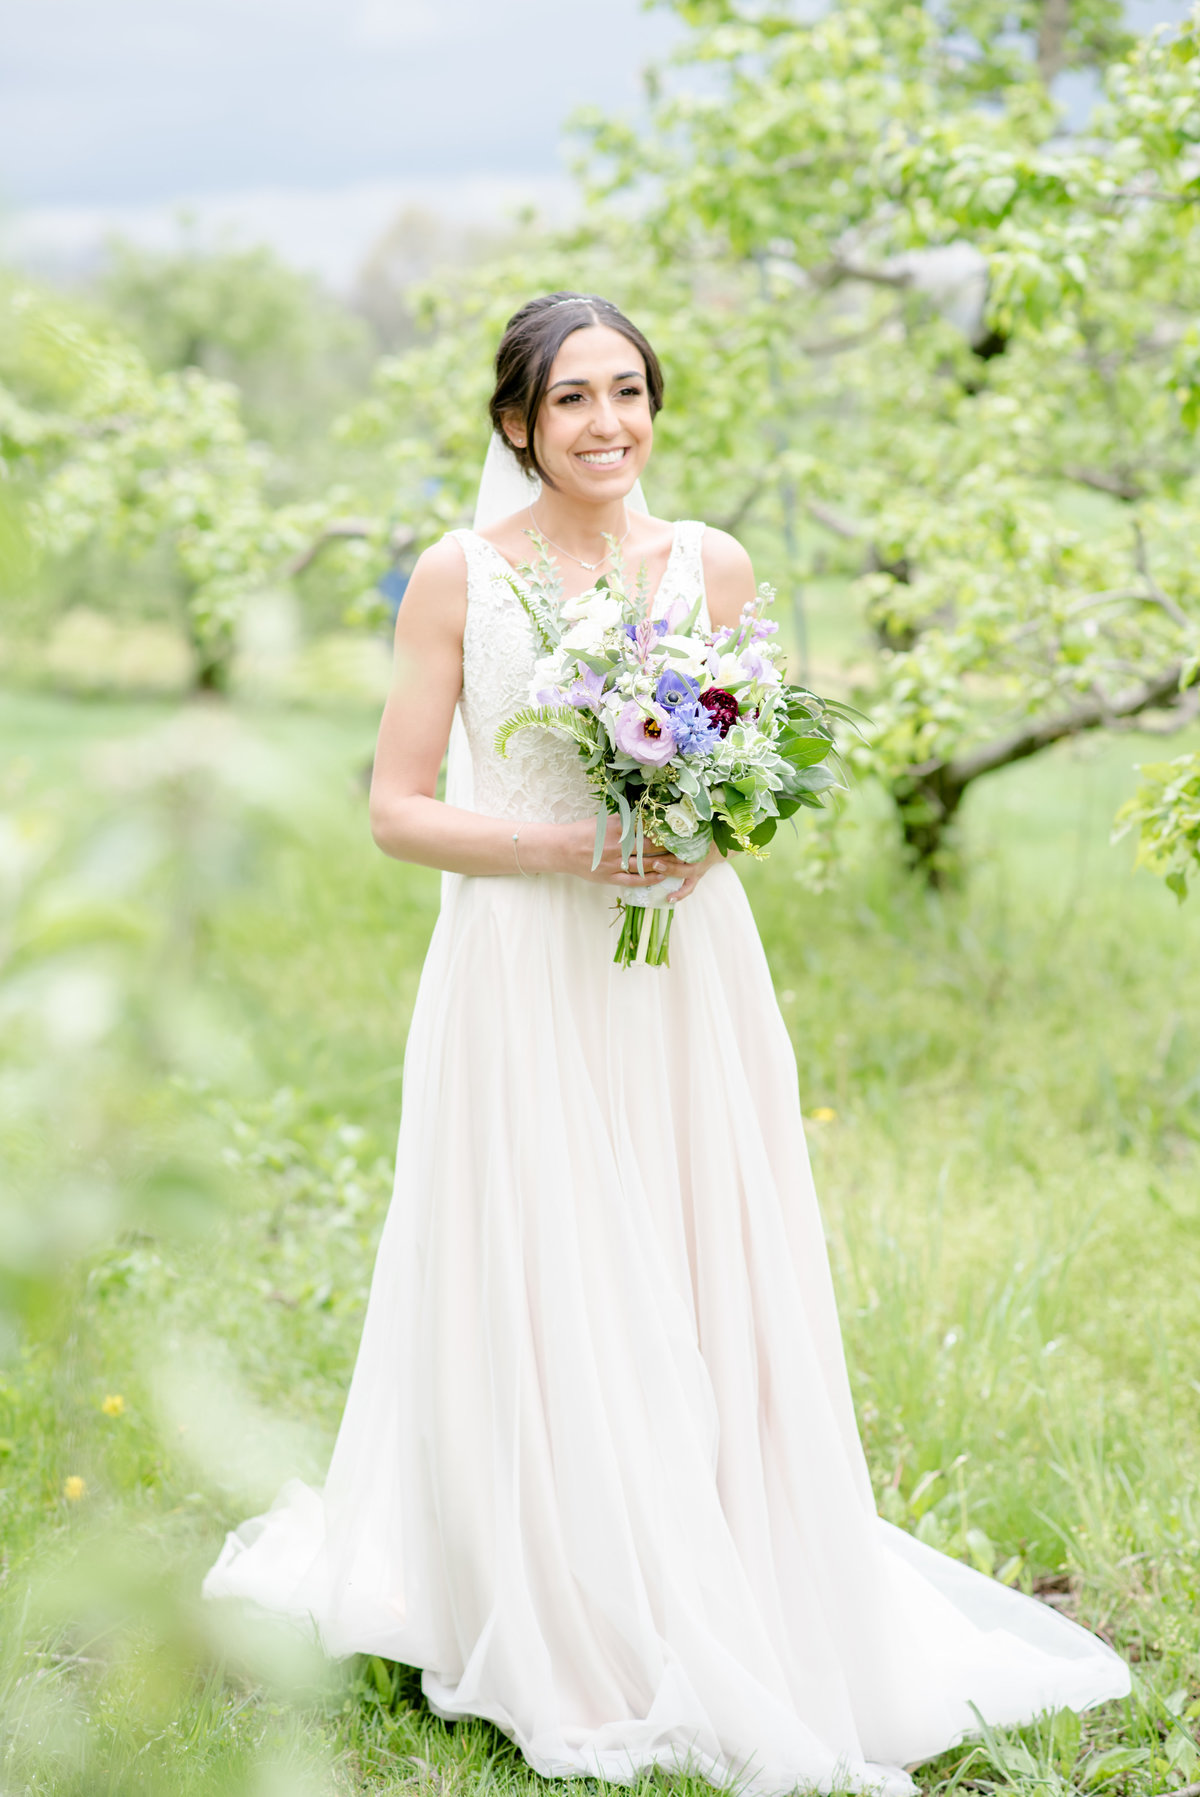 Rustic Barn Wedding Pennsylvania-Rodale Institute Wedding Raquel and Daniel Wedding 22922-31